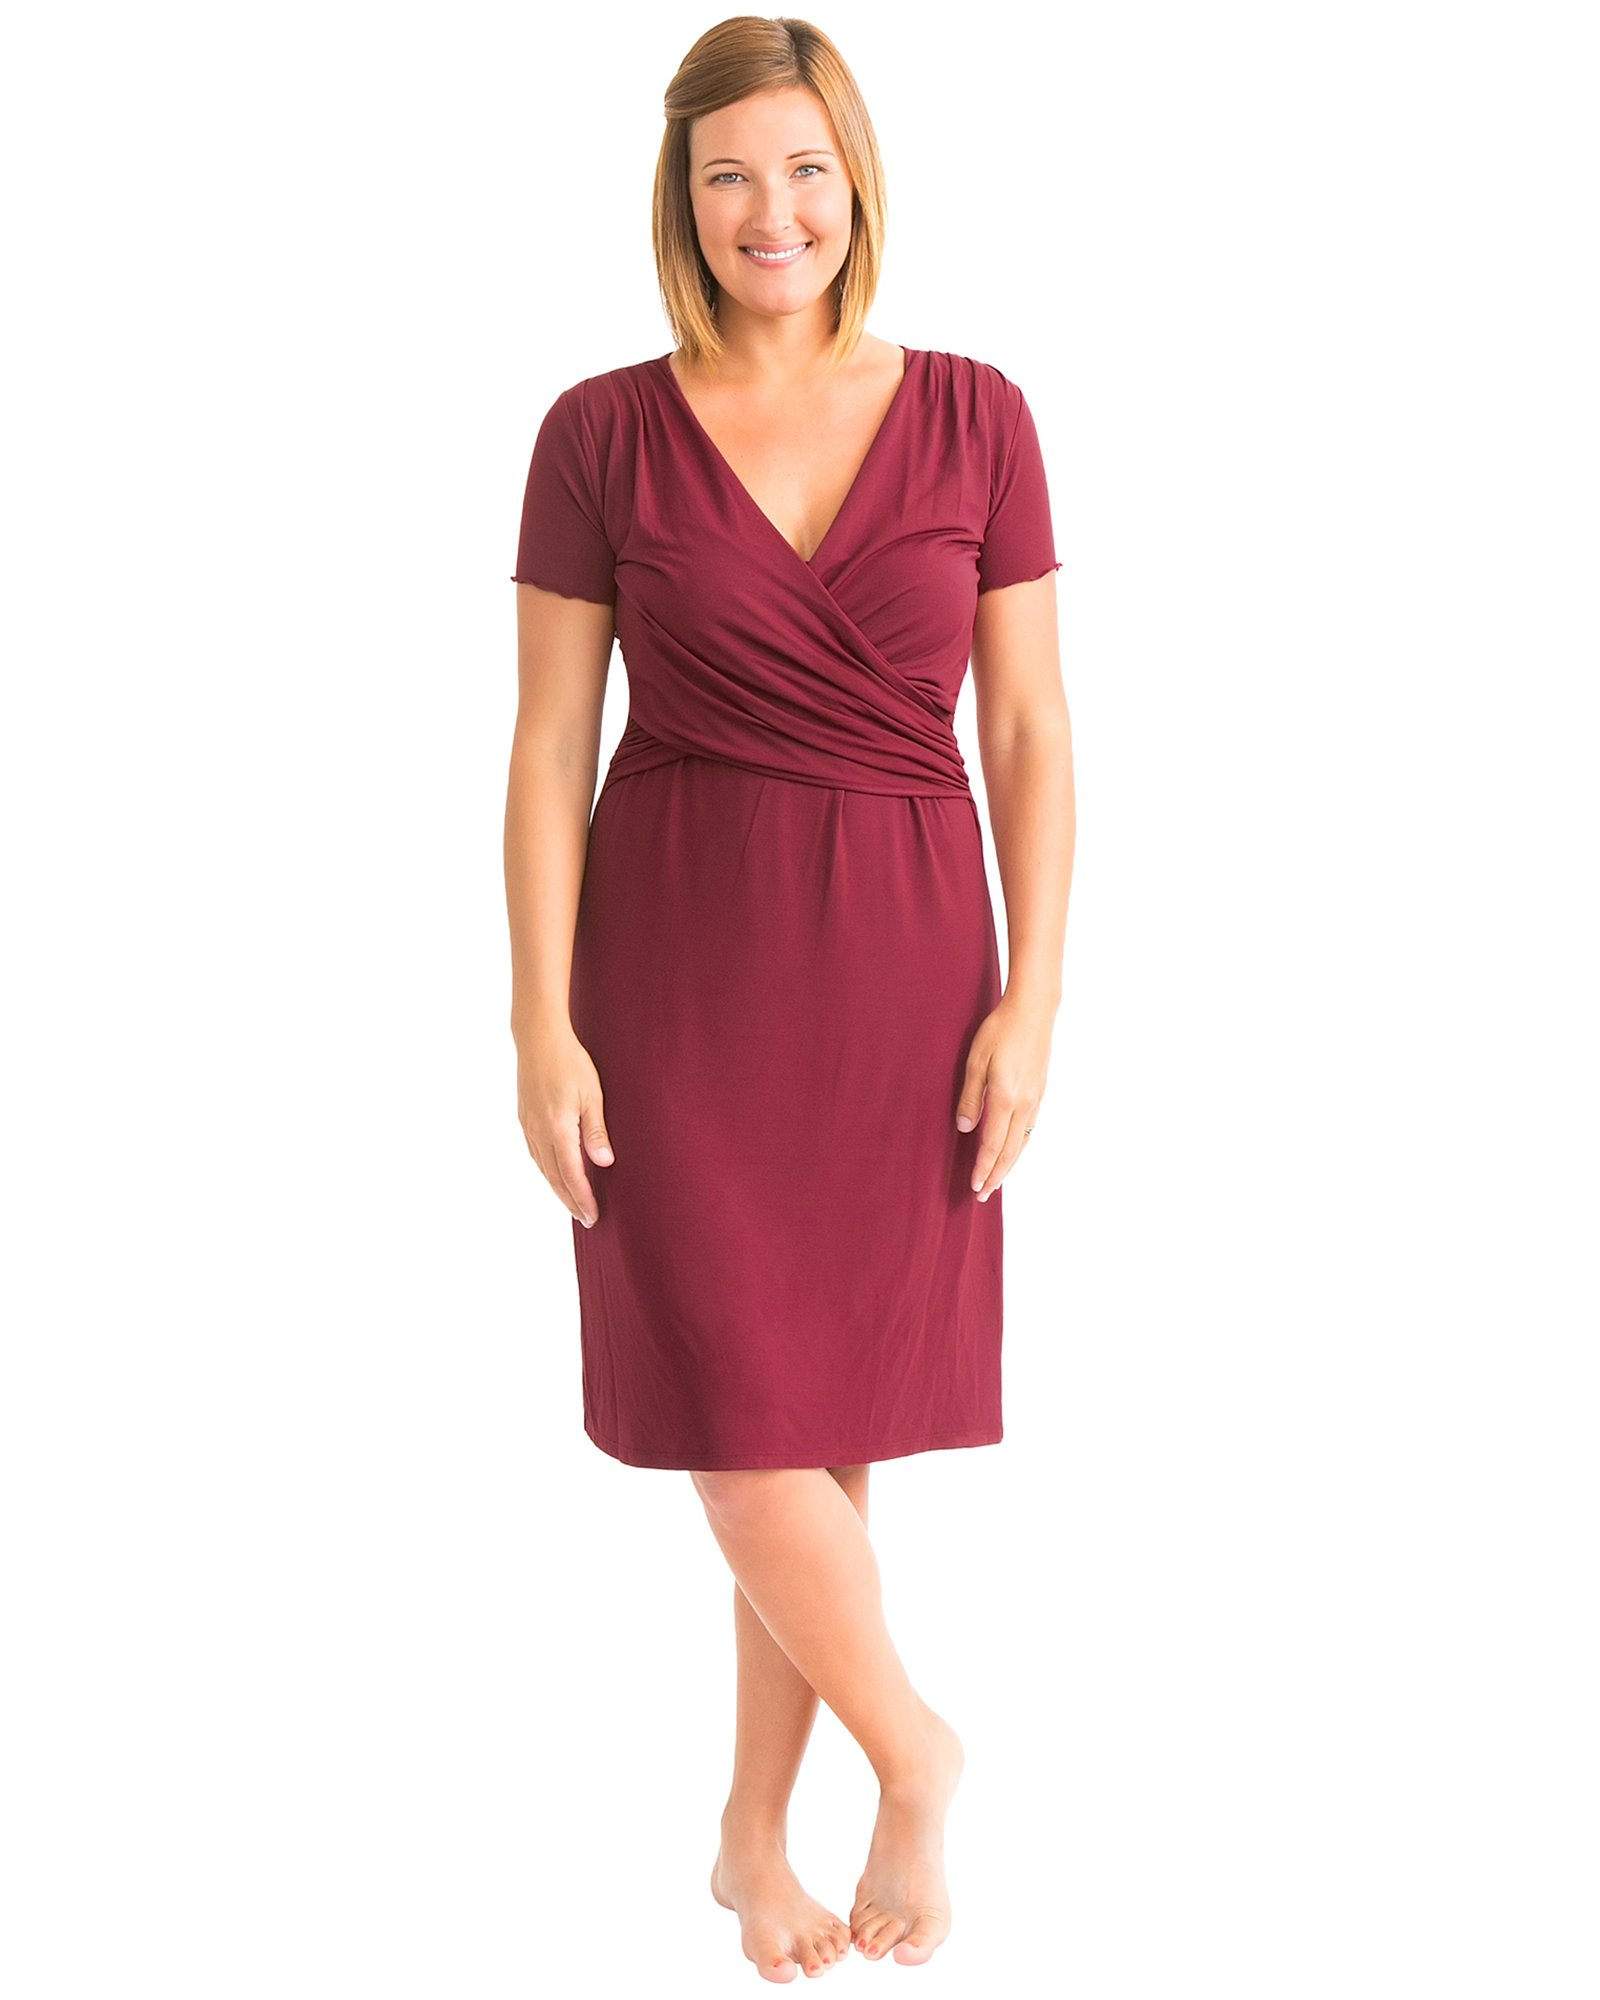 Kindred Bravely Angelina Ultra Soft Maternity & Nursing Nightgown Dress (Cabernet, Small)